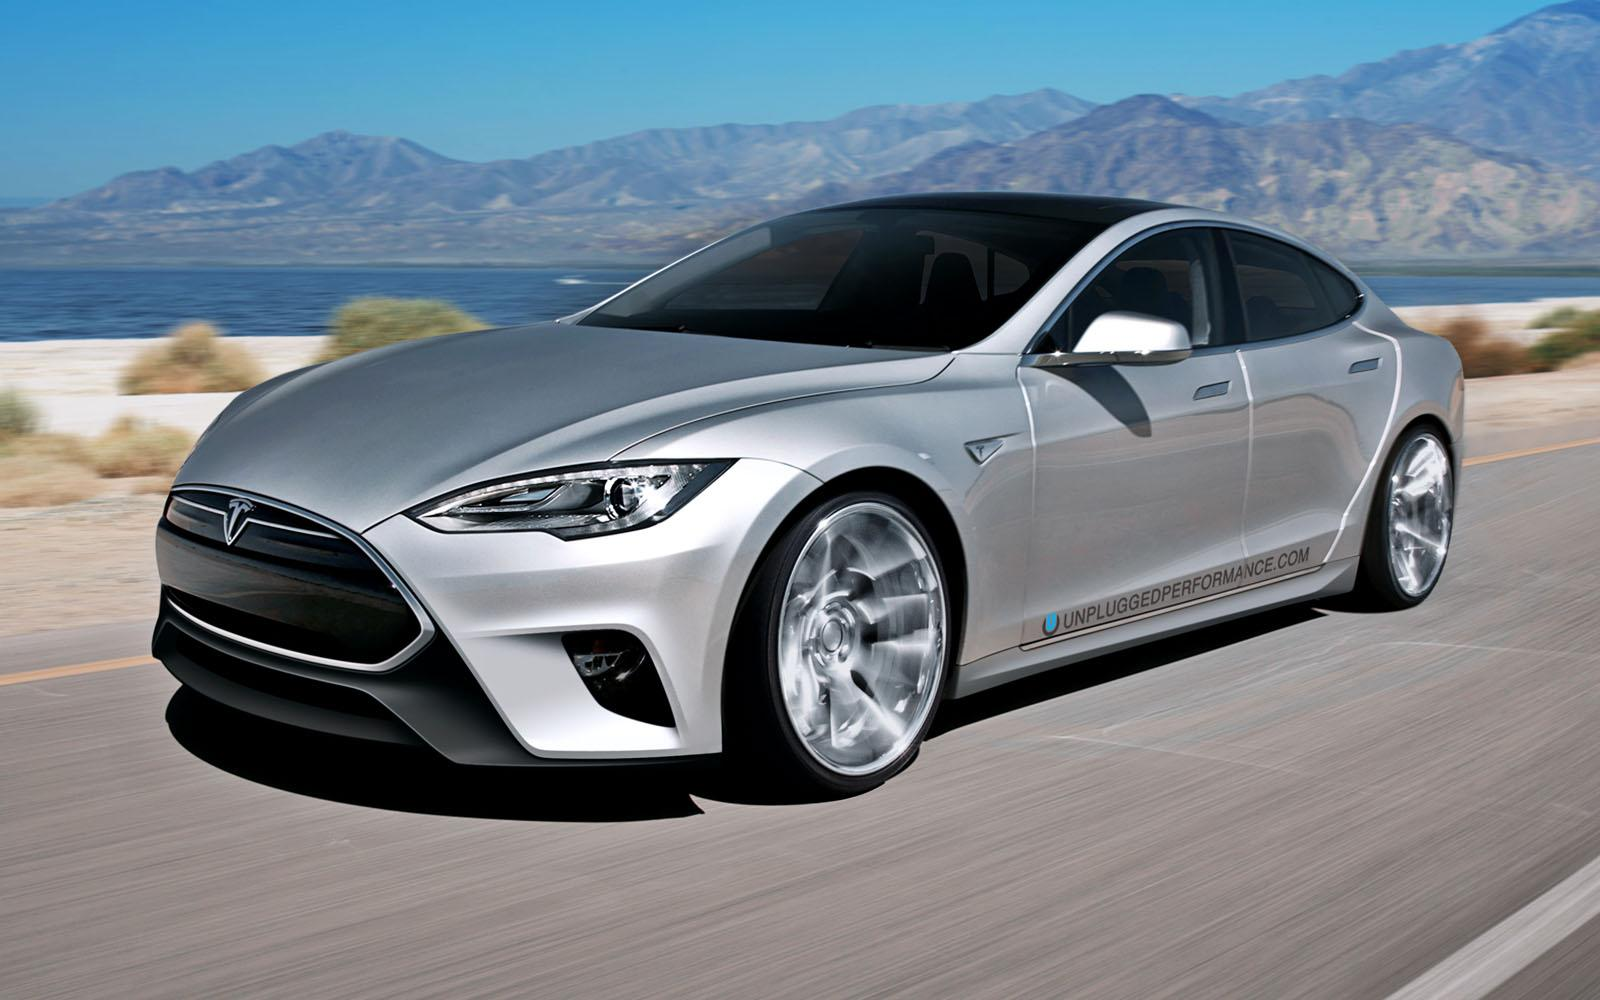 Unplugged Performance Previews Tesla Model S Upgrades